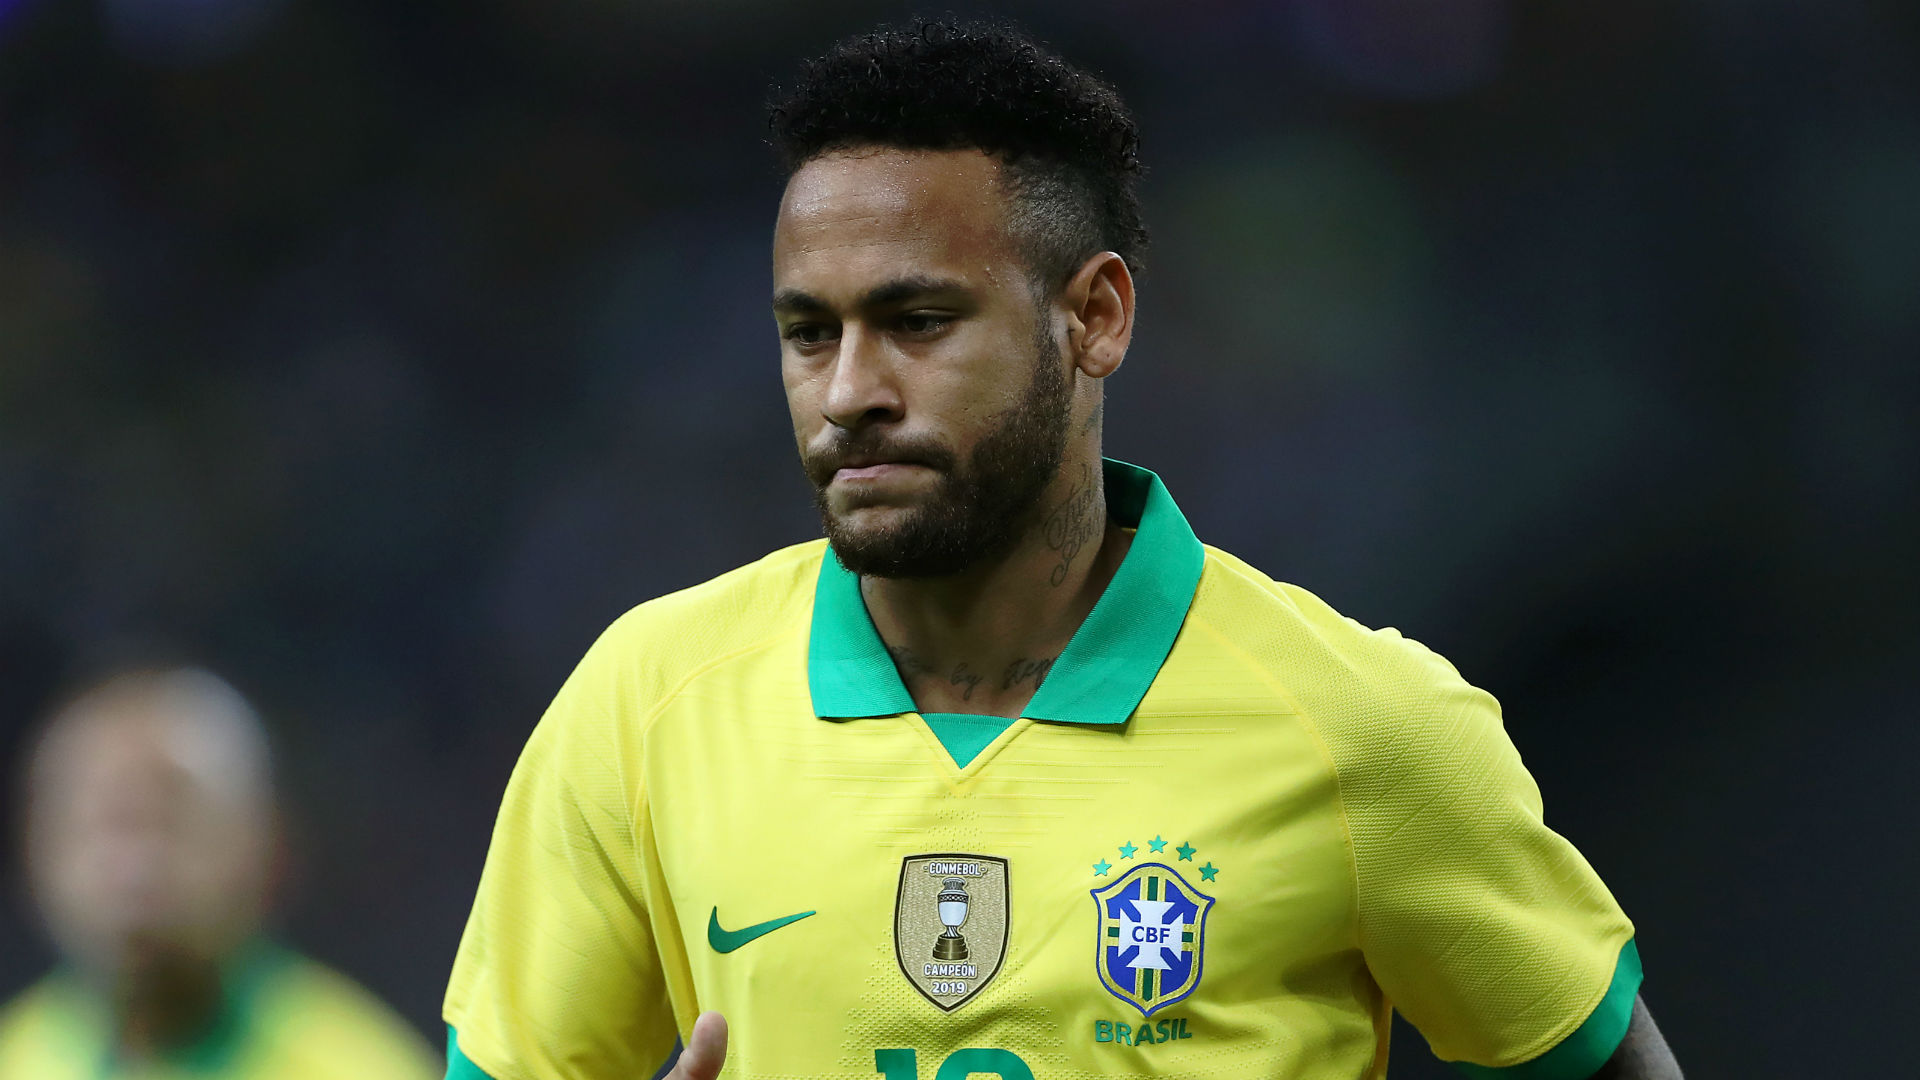 Neymar 'not a leader' and must make football top priority – Rafael